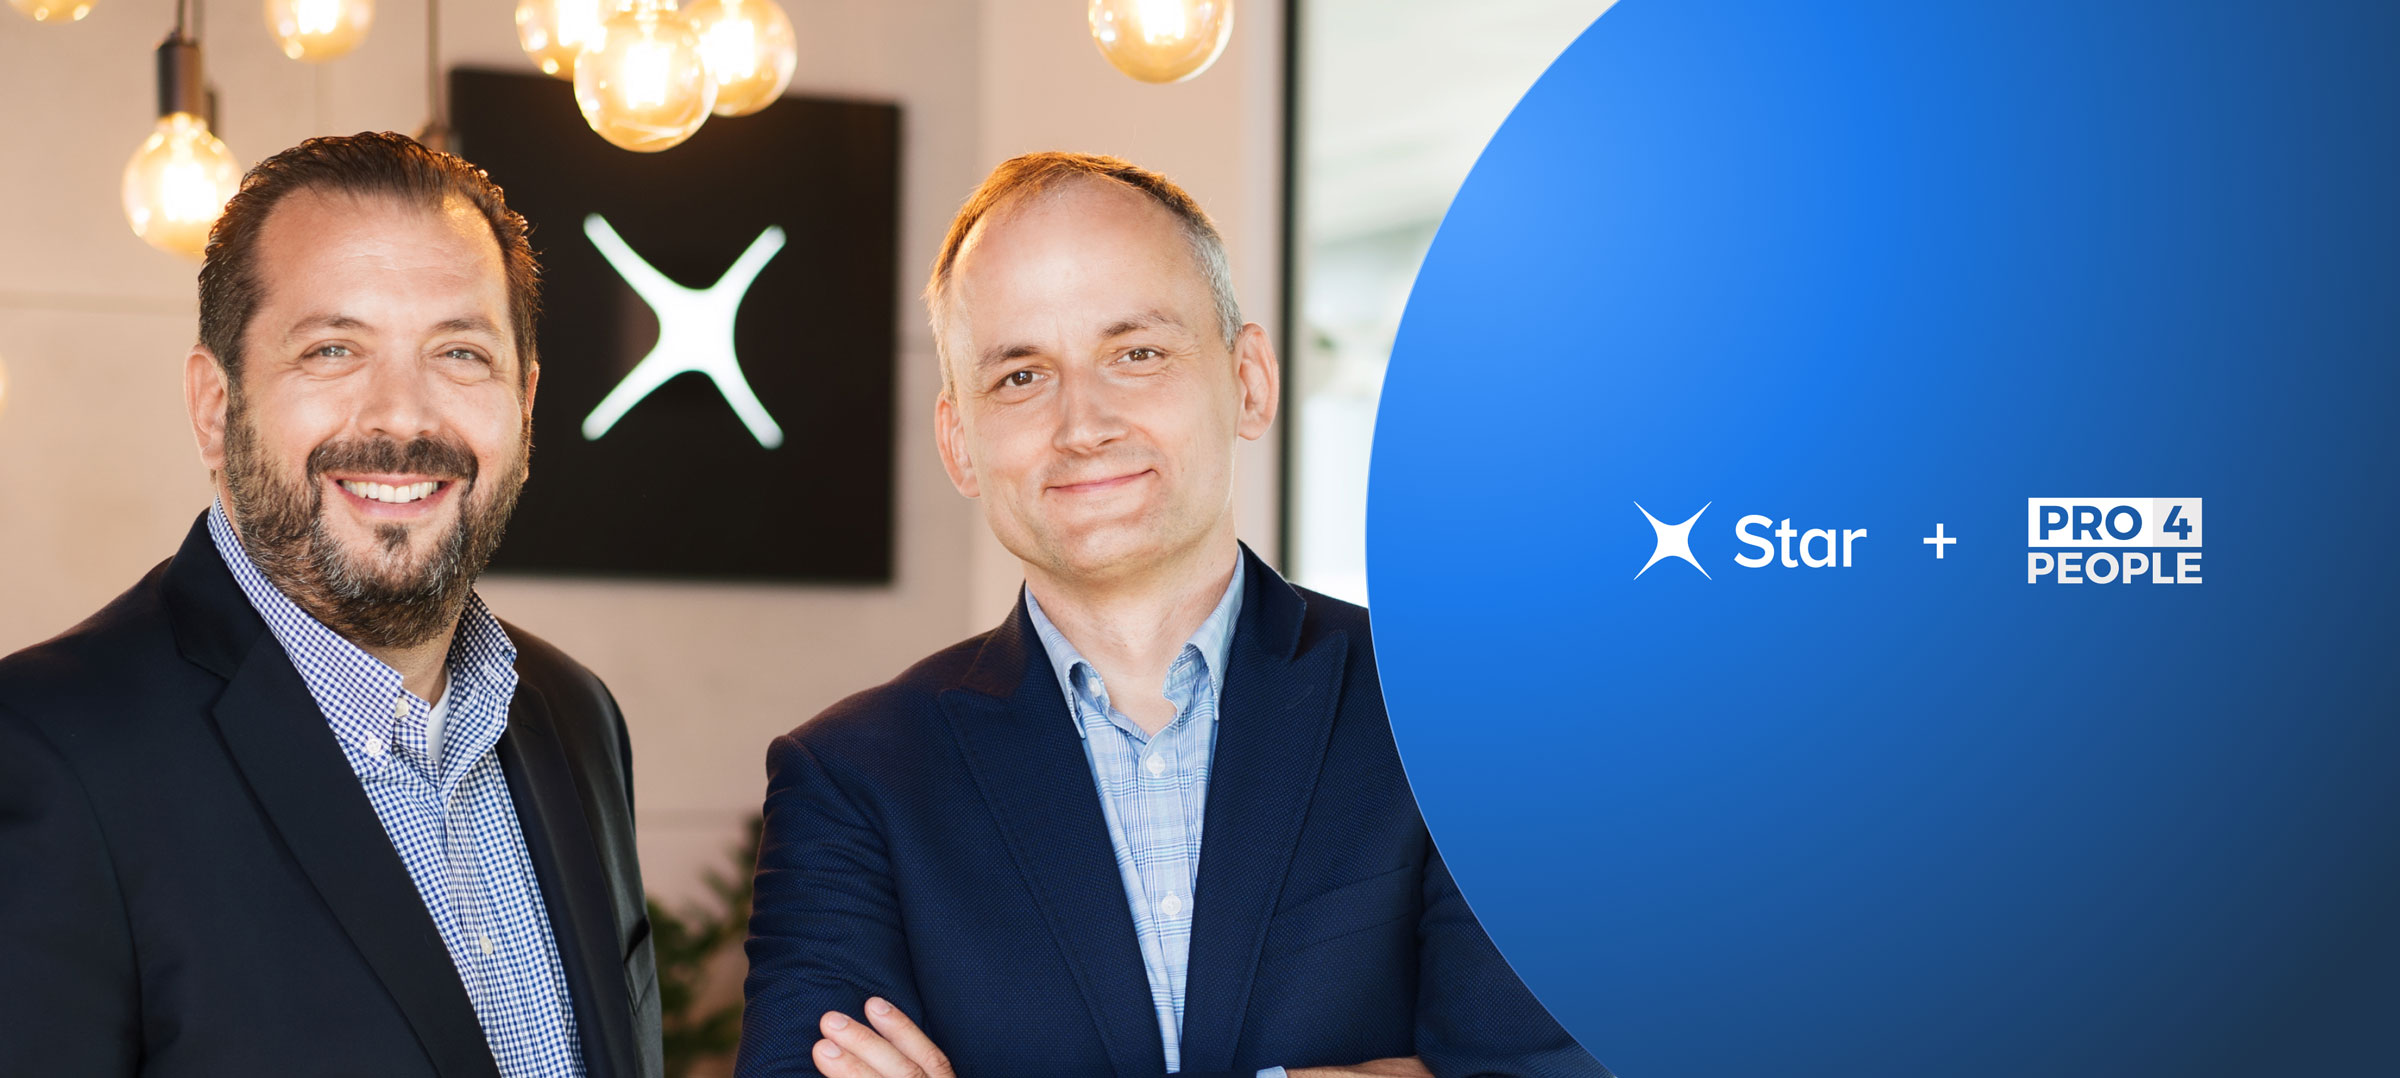 Star acquires Pro4People, creating powerhouse in MedTech development and regulatory consulting